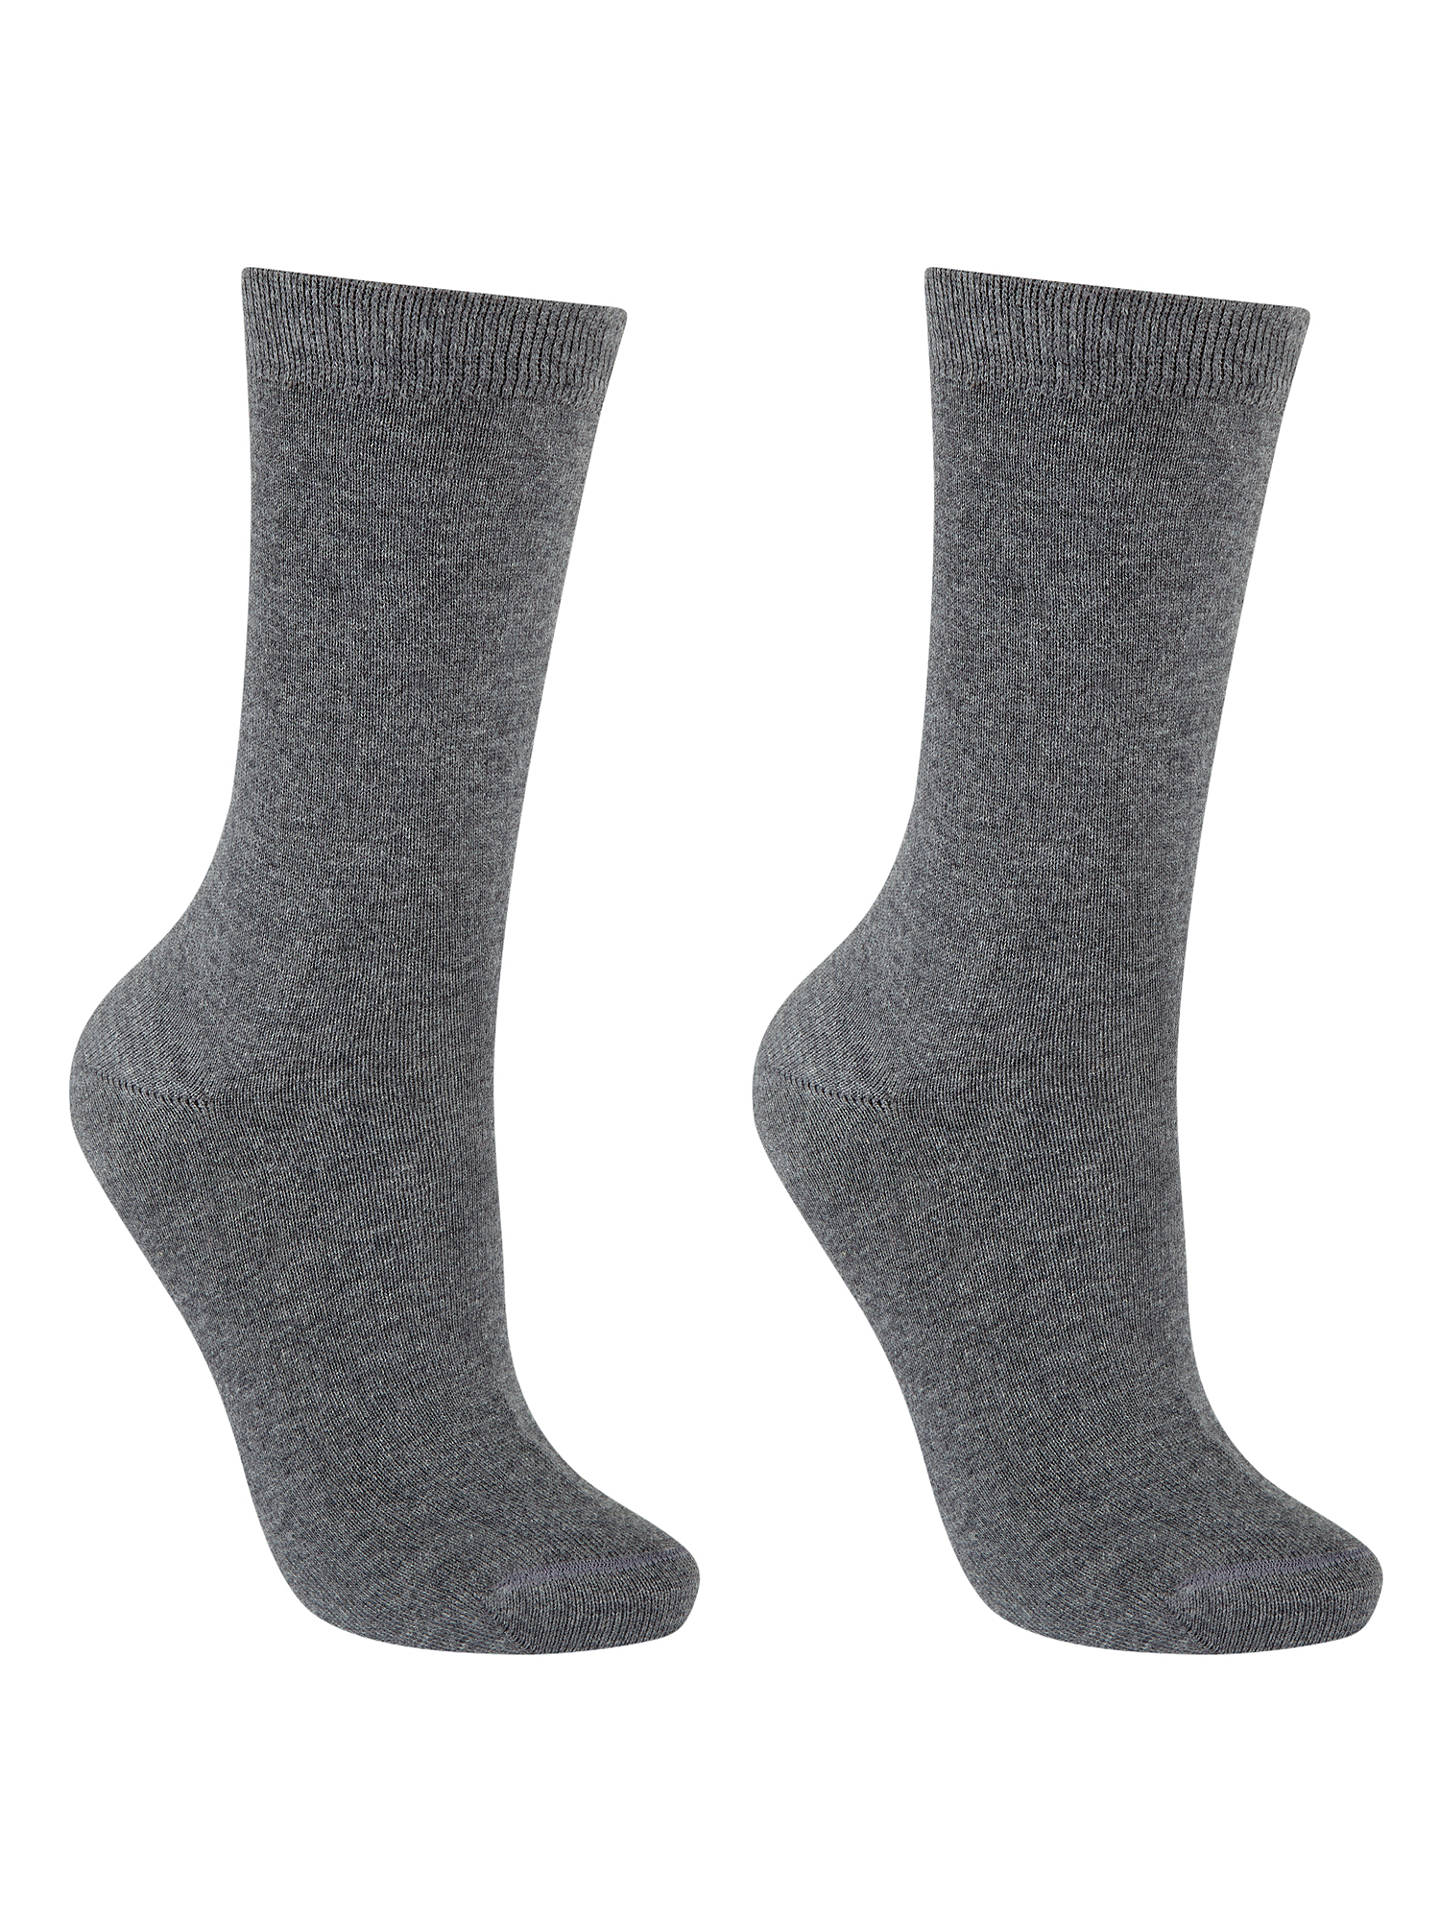 BuyJohn Lewis & Partners Egyptian Cotton Ankle Socks, Pack of 2, Grey, S-M Online at johnlewis.com